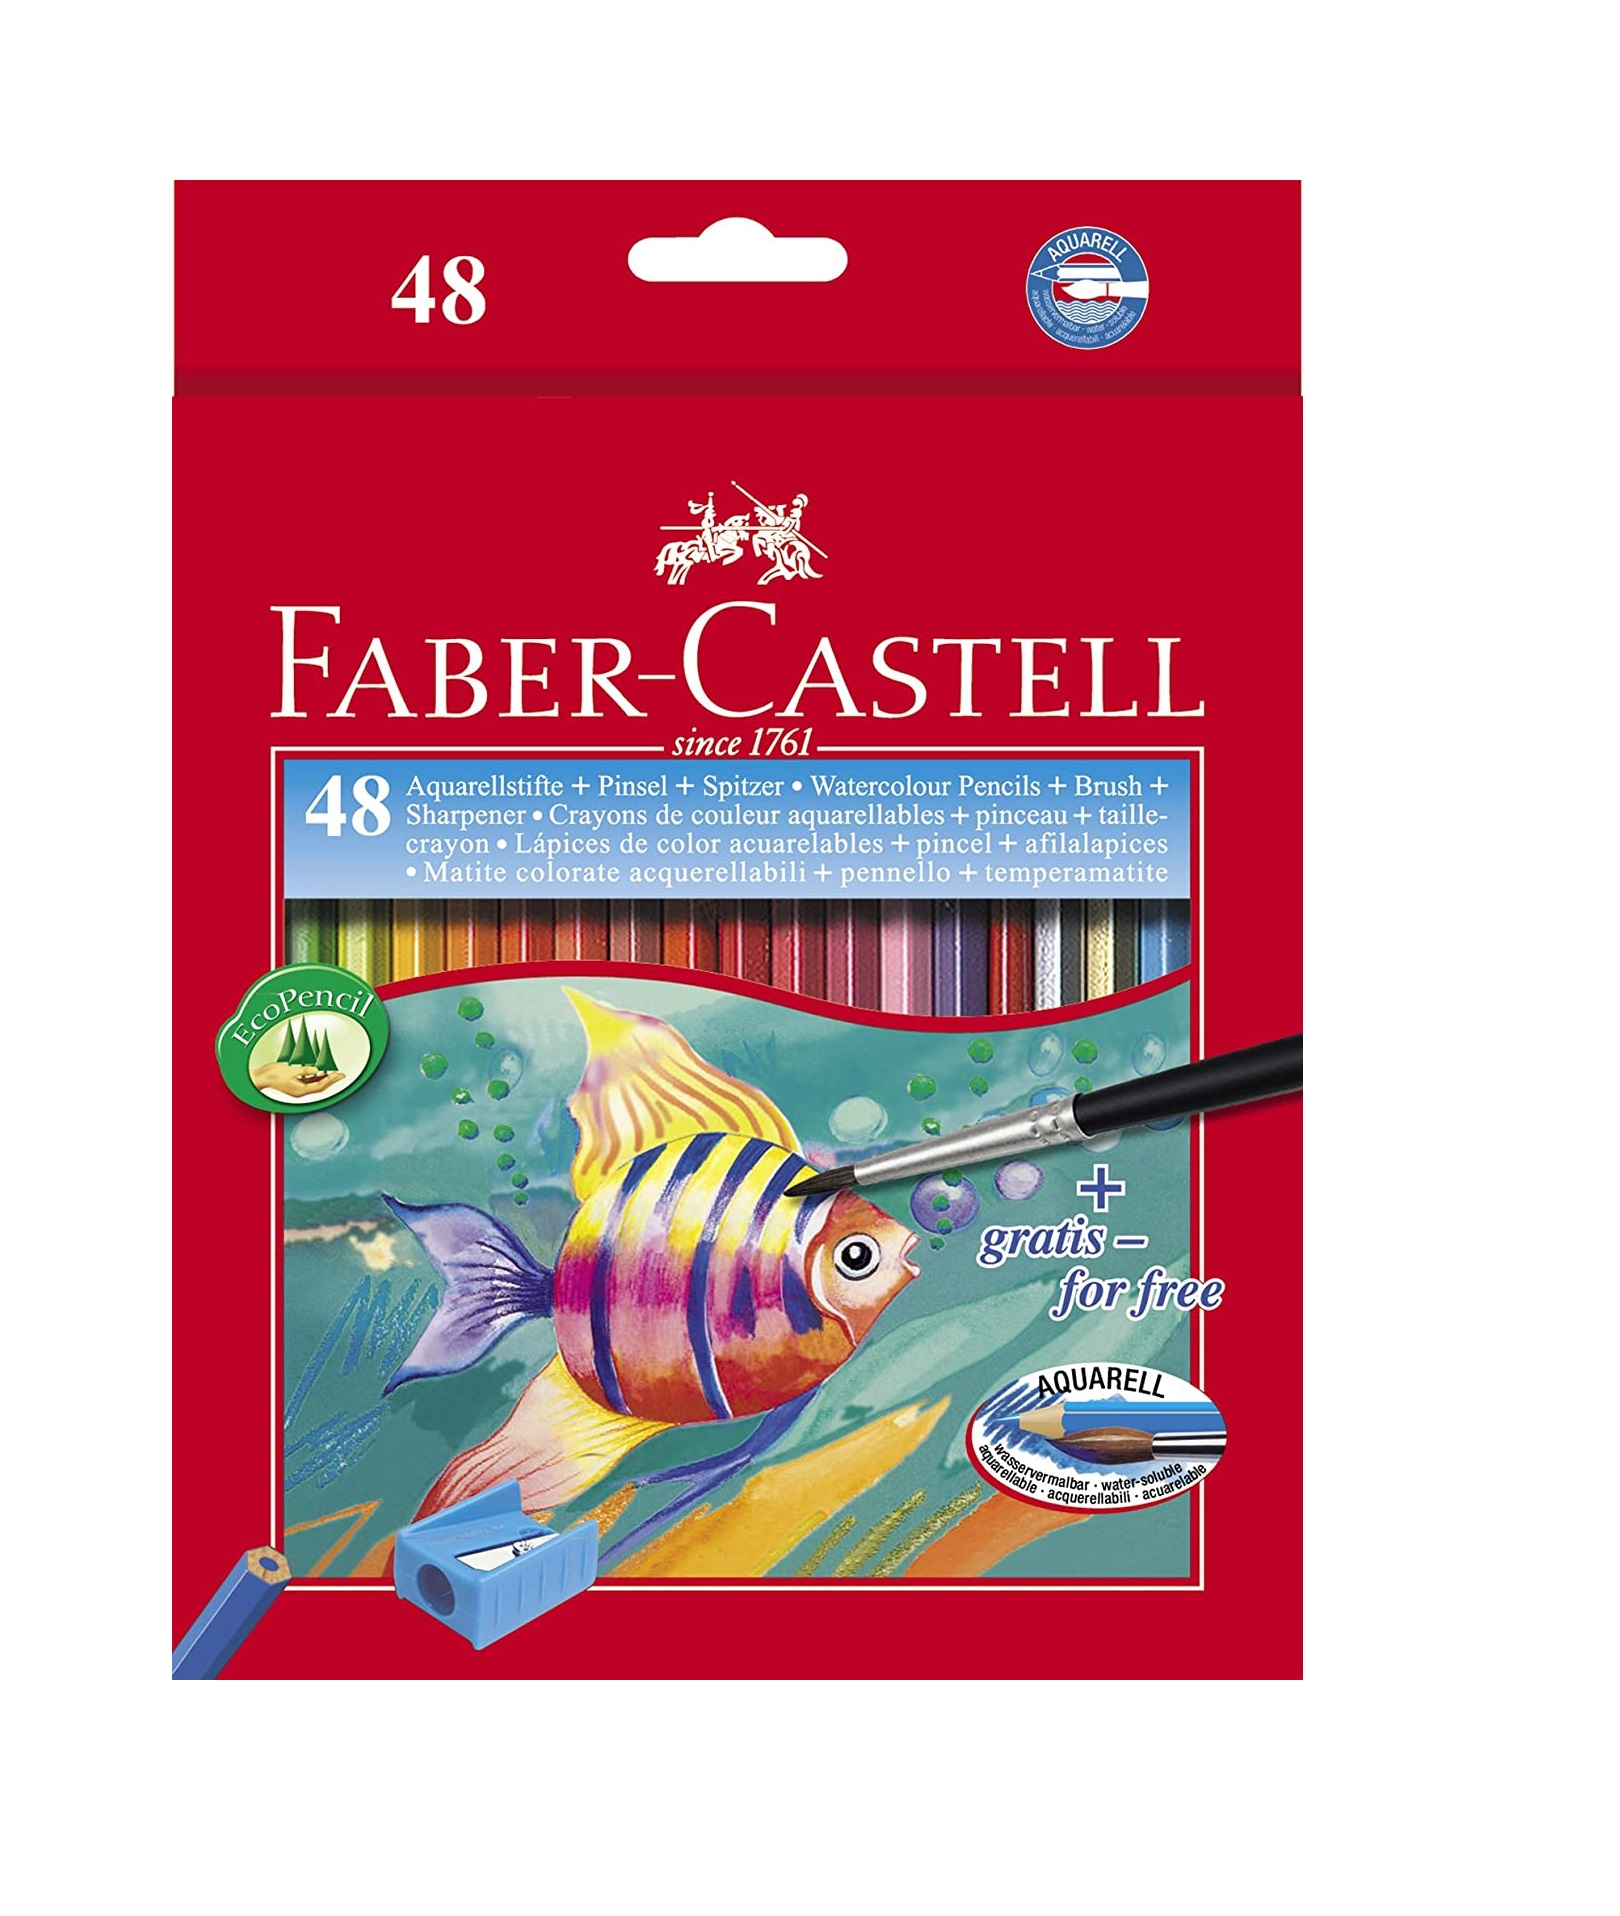 Faber-Castell Design Series Aquarelle Water Color Pencils - 48 Shades